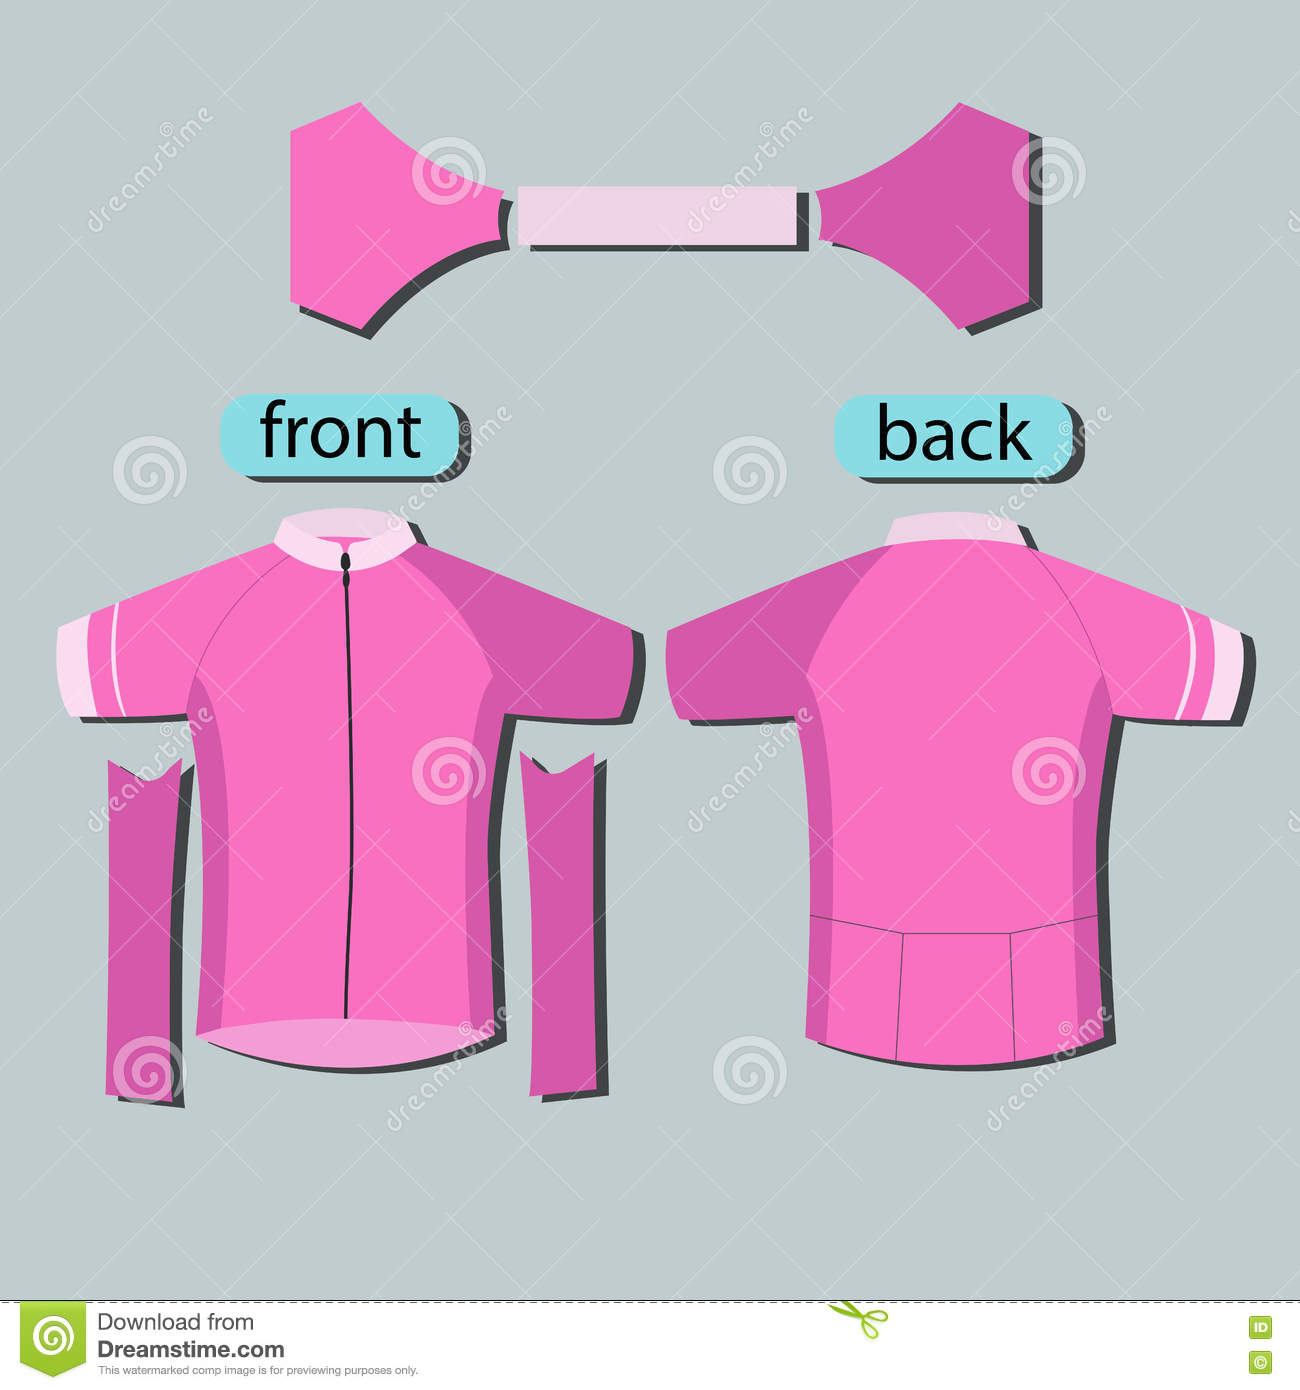 Pink Pattern Cycling Jerseys Template Stock Vector - Illustration of ... 8b49e610c